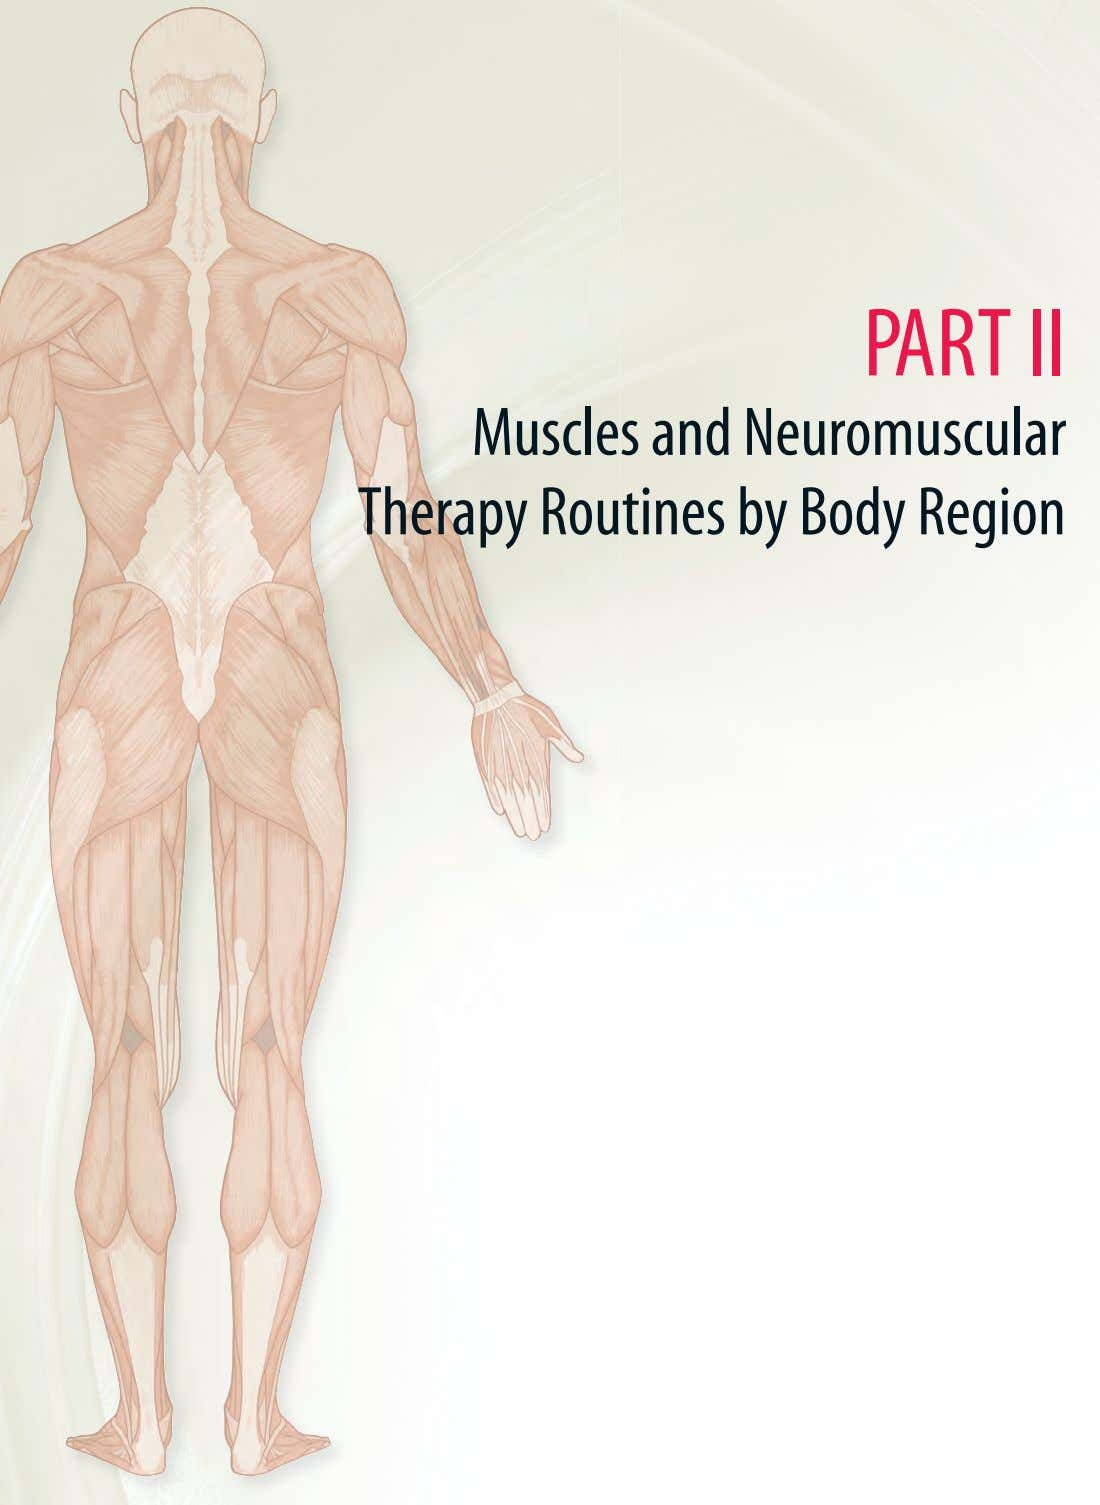 PART II Muscles and Neuromuscular Therapy Routines by Body Region